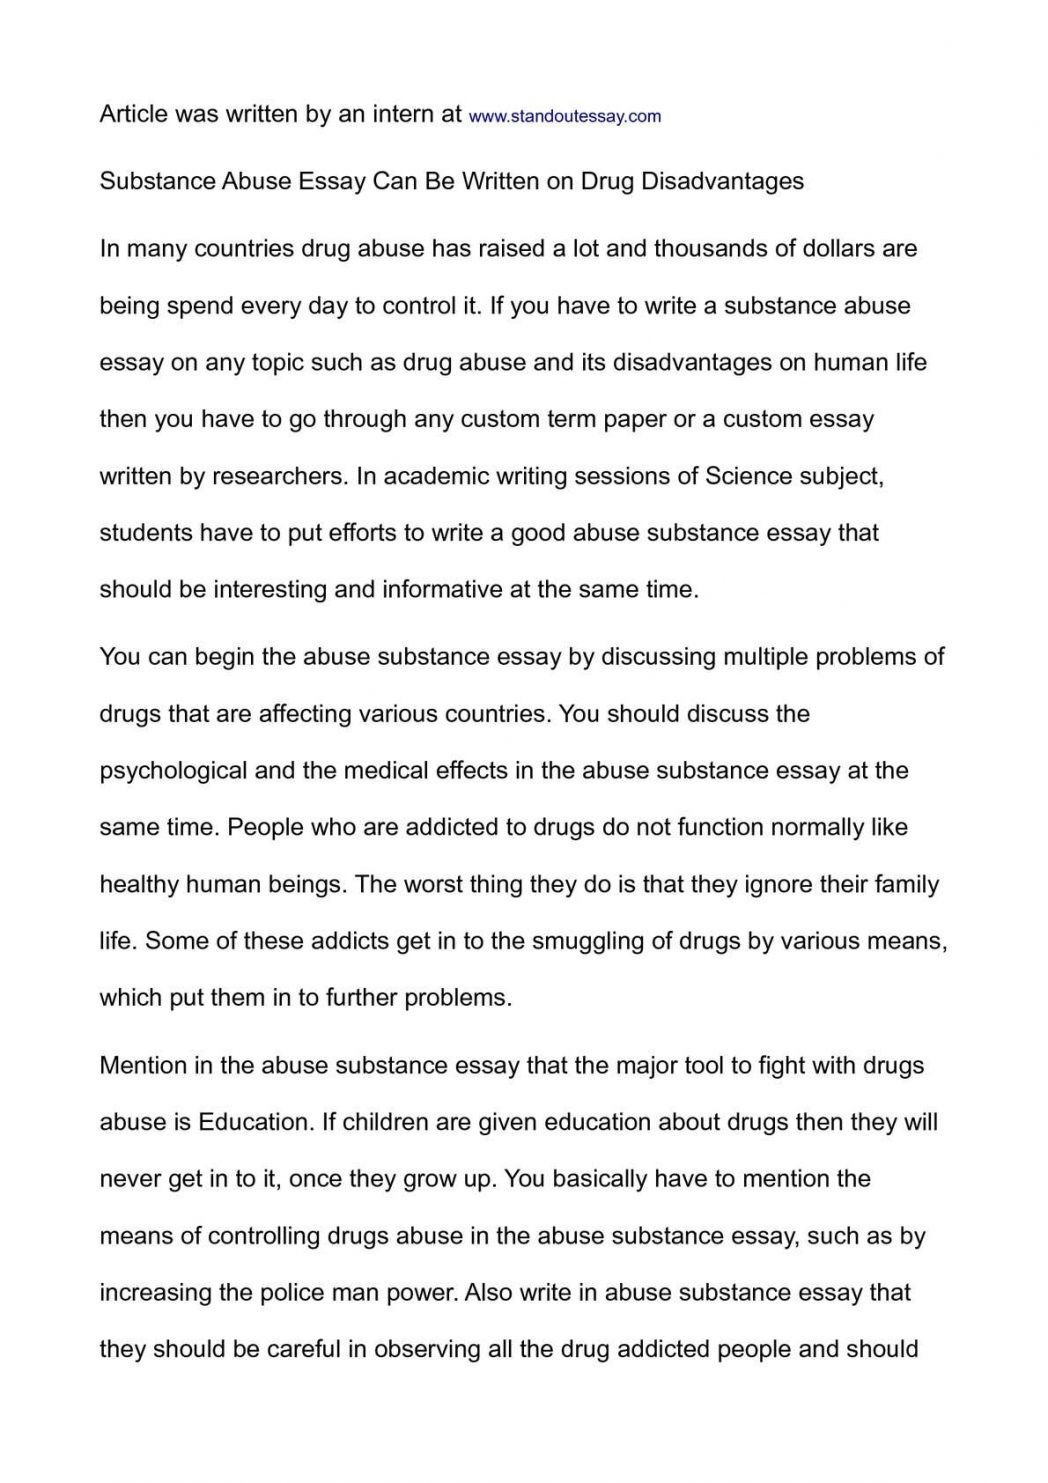 009 Essay On Gun Control Substance Abuse Essays Argumentati Persuasives Argumentative Outline Thesis Topics Conclusion Against Introduction Statement 1048x1483 Incredible Laws Full